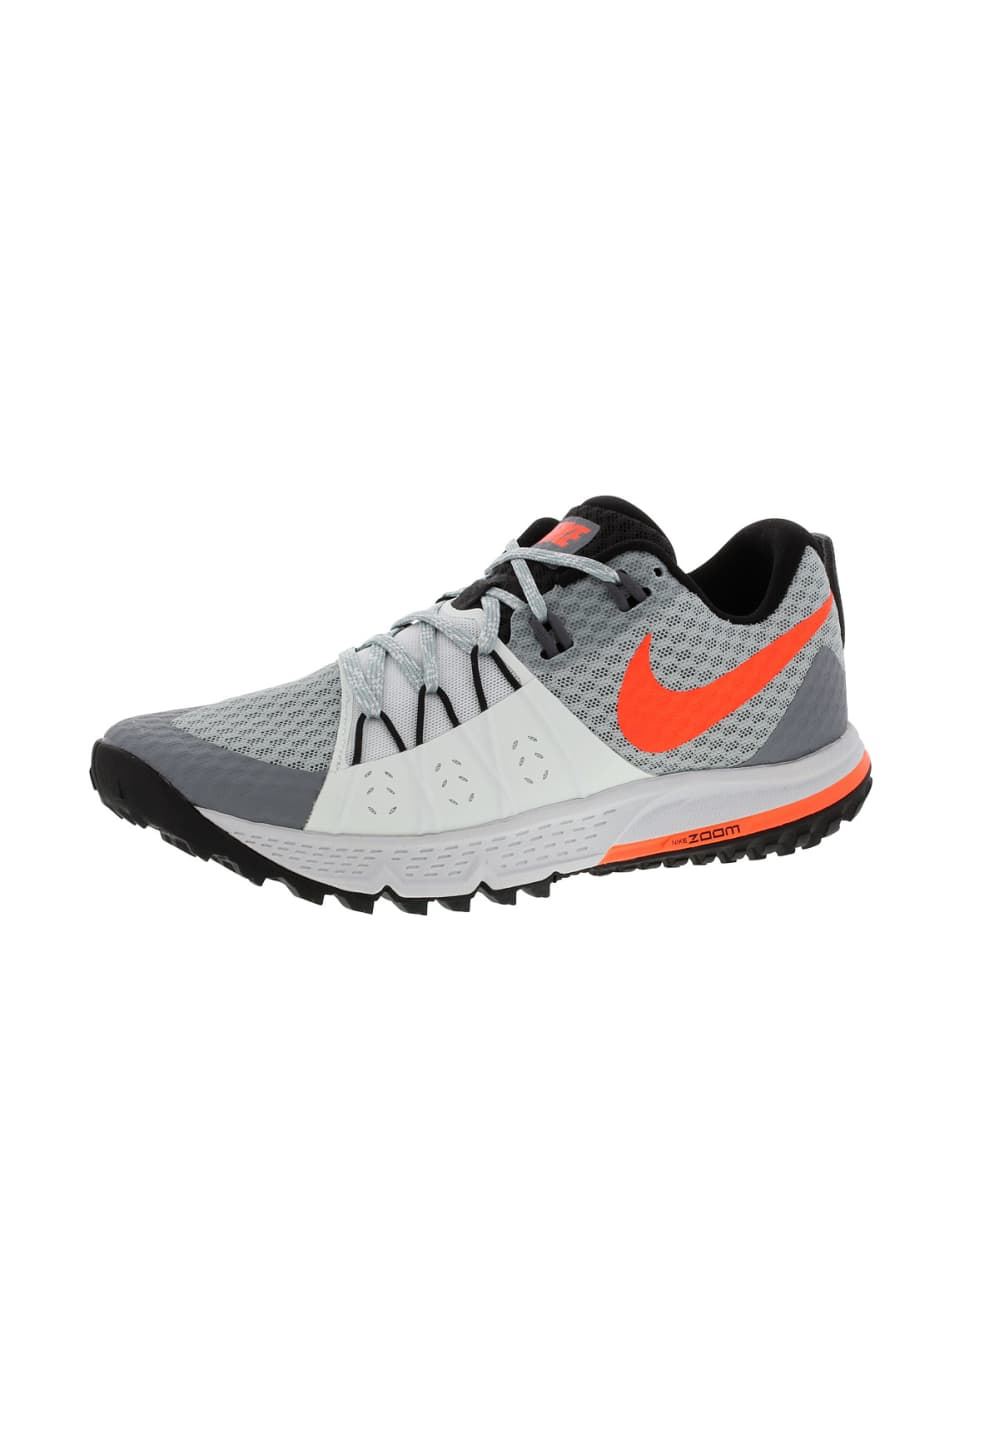 414d9ad90084 ... Nike Air Zoom Wildhorse 4 - Running shoes for Women - Grey. Back to  Overview. 1  2  3  4  5. Previous